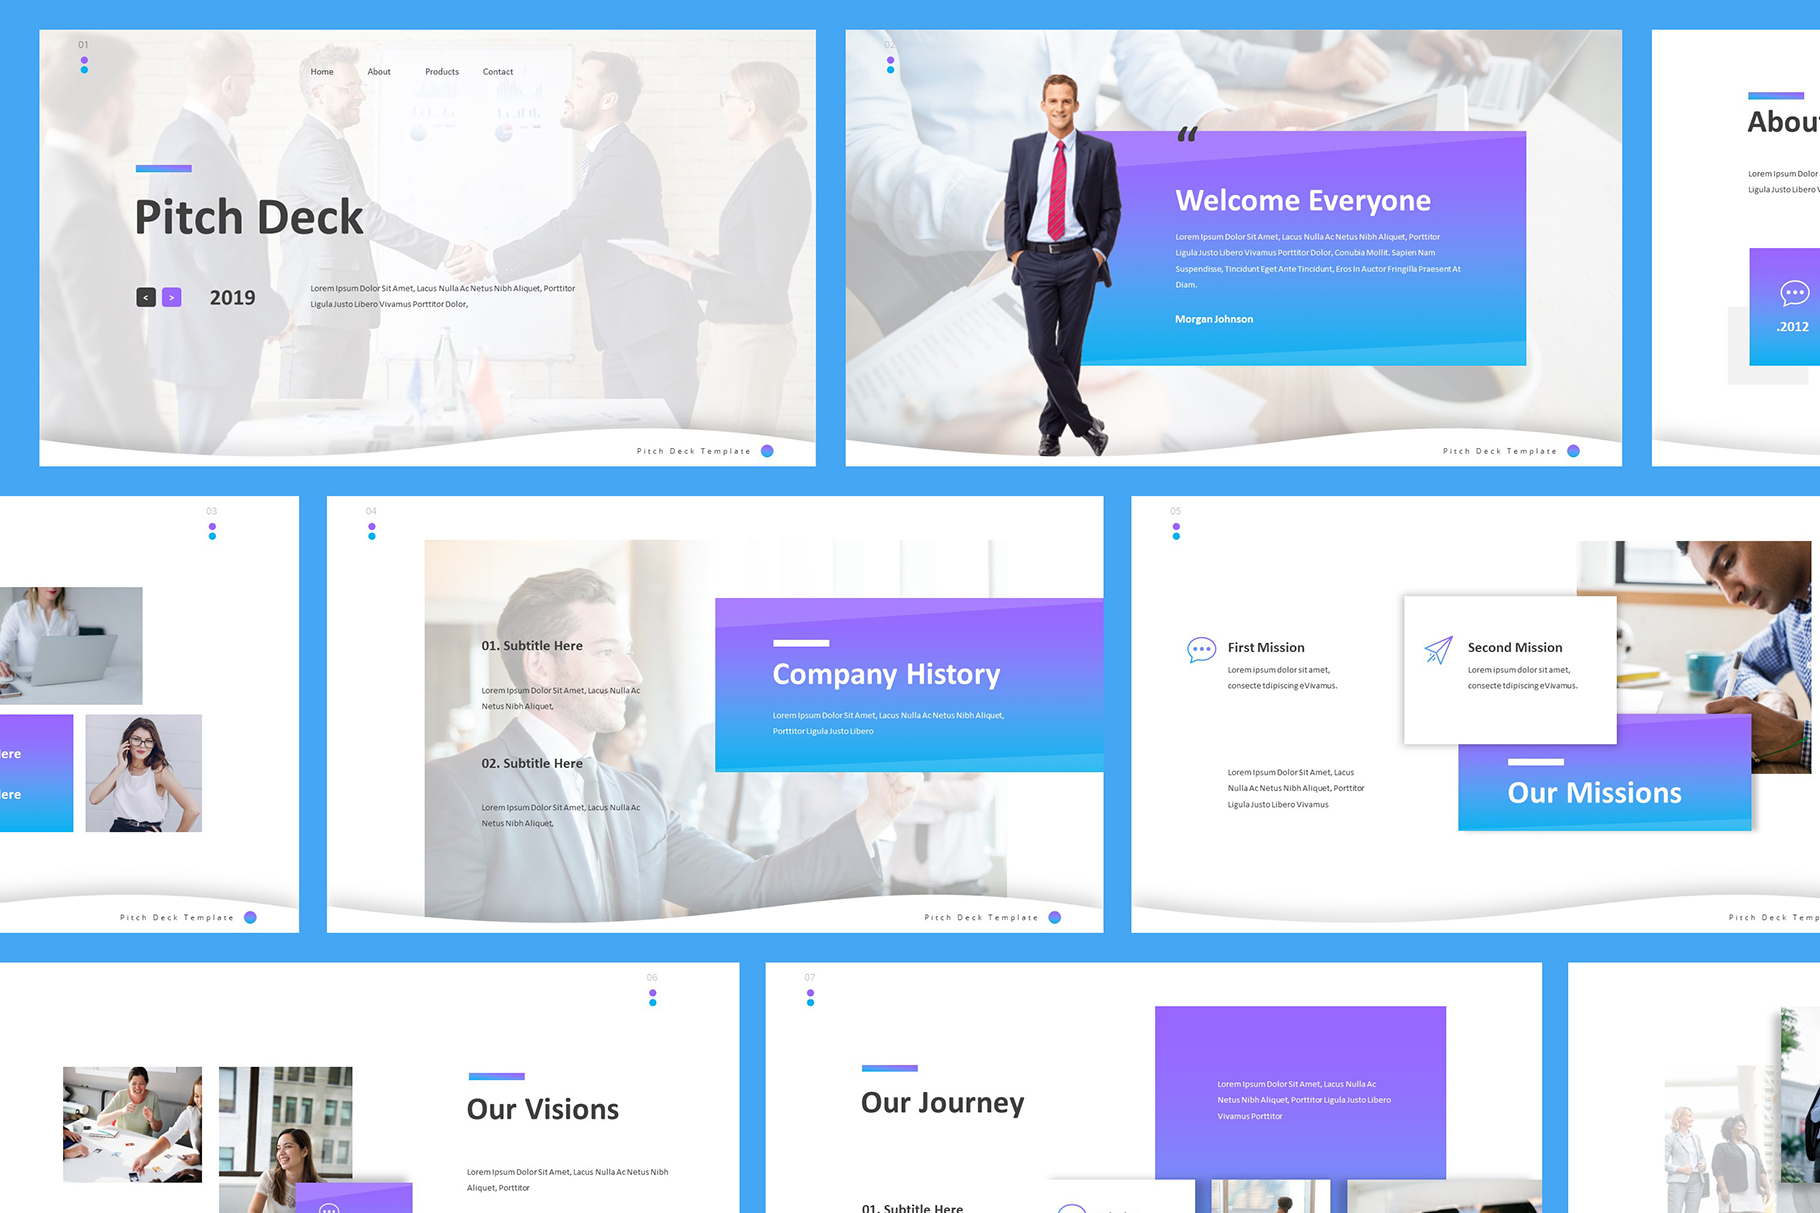 Pitch Deck Google Slides Template example image 2